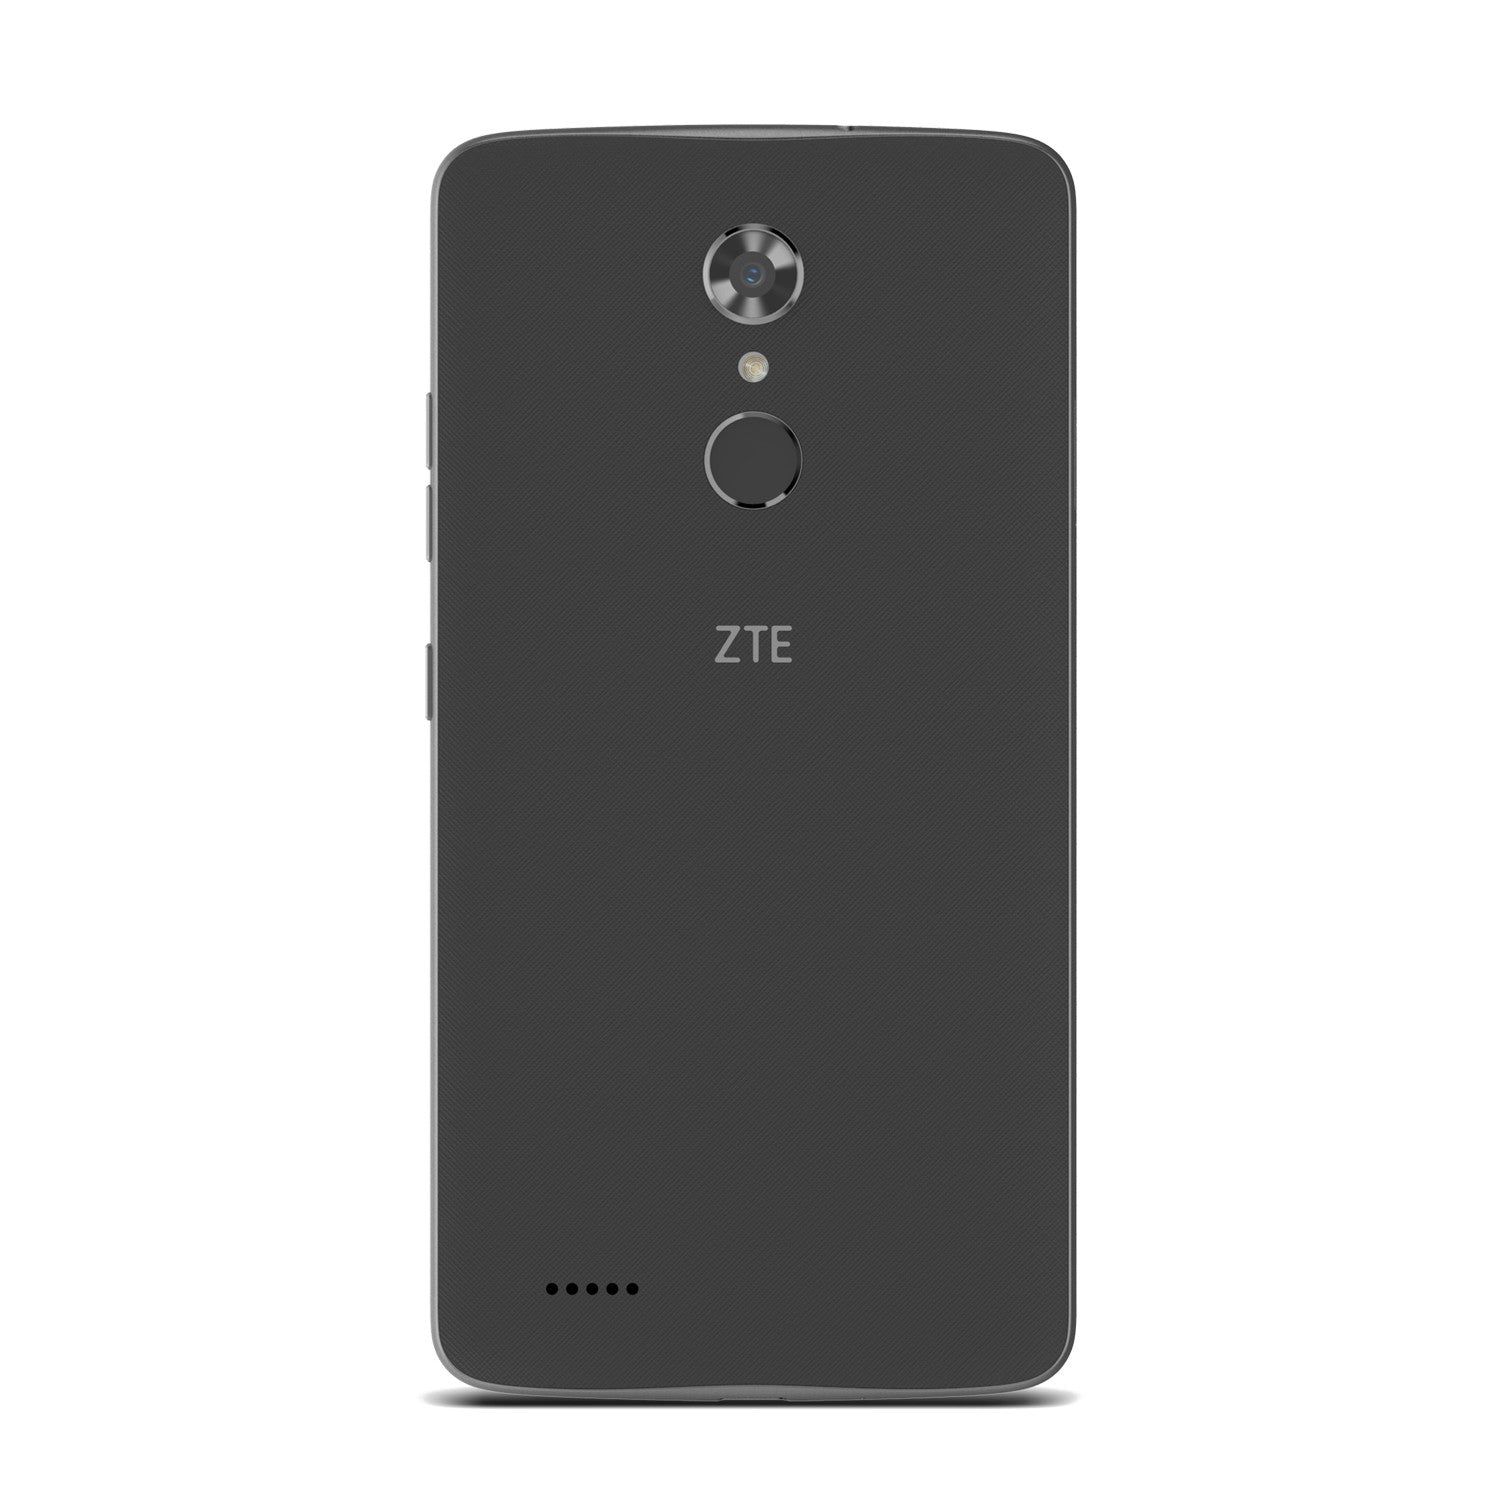 "ZTE Max XL 6"" LTE 16GB Smartphone for Boost Mobile"